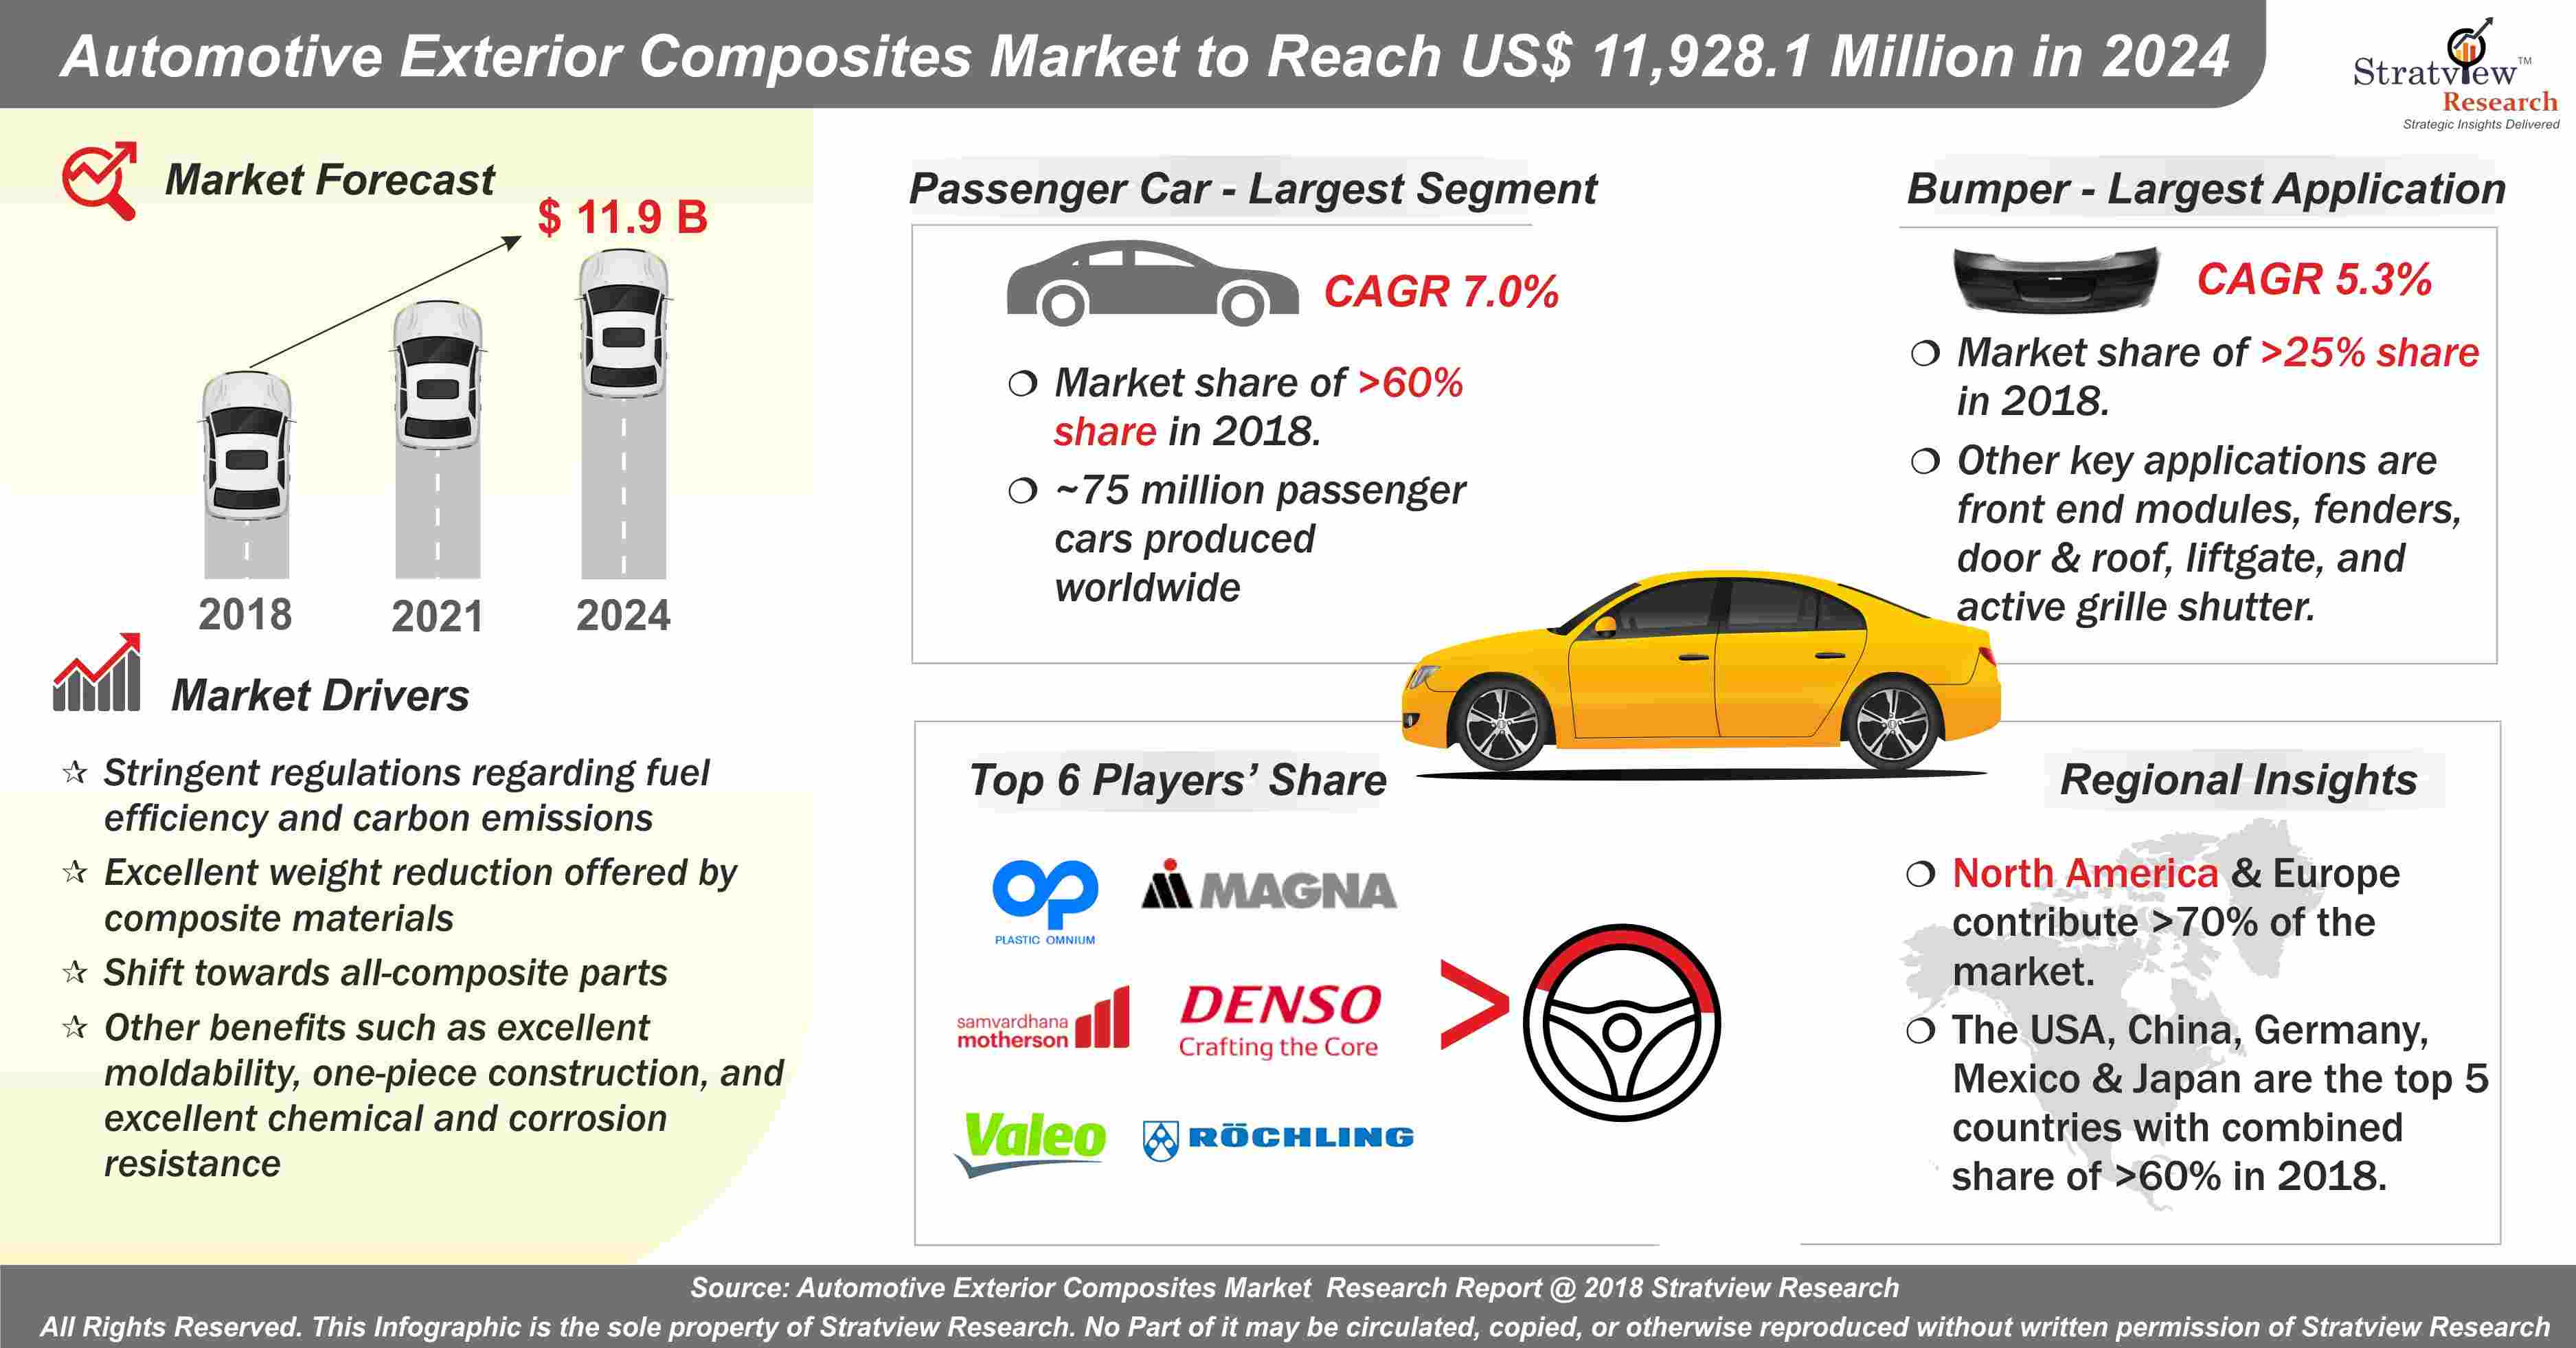 Automotive Exterior Composites Market Analysis